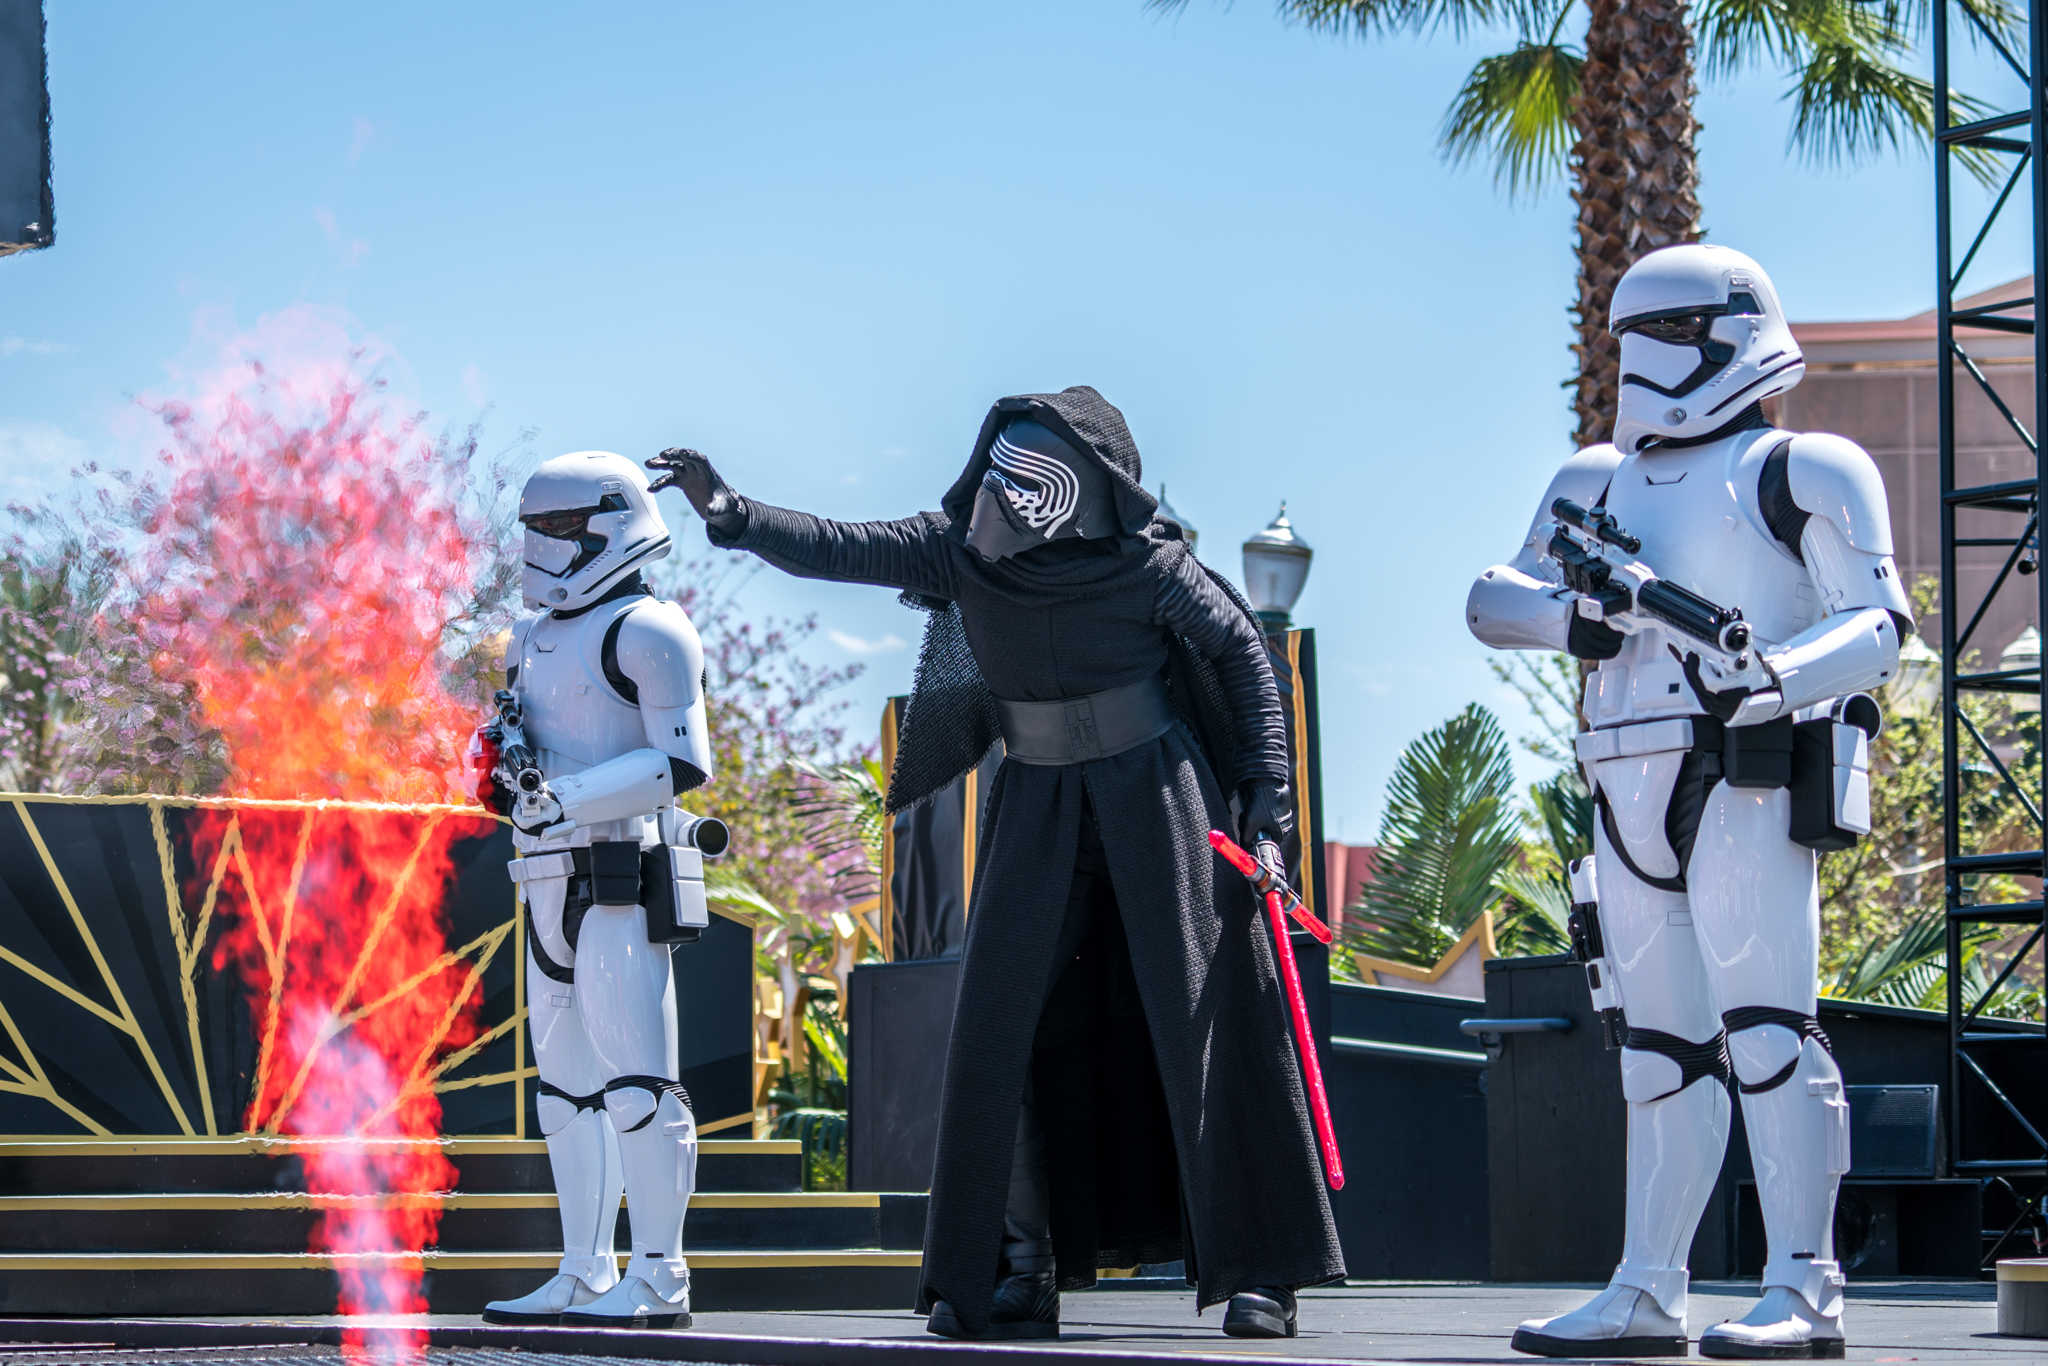 New Star Wars shows storm onto the scene at Disney's Hollywood Studios